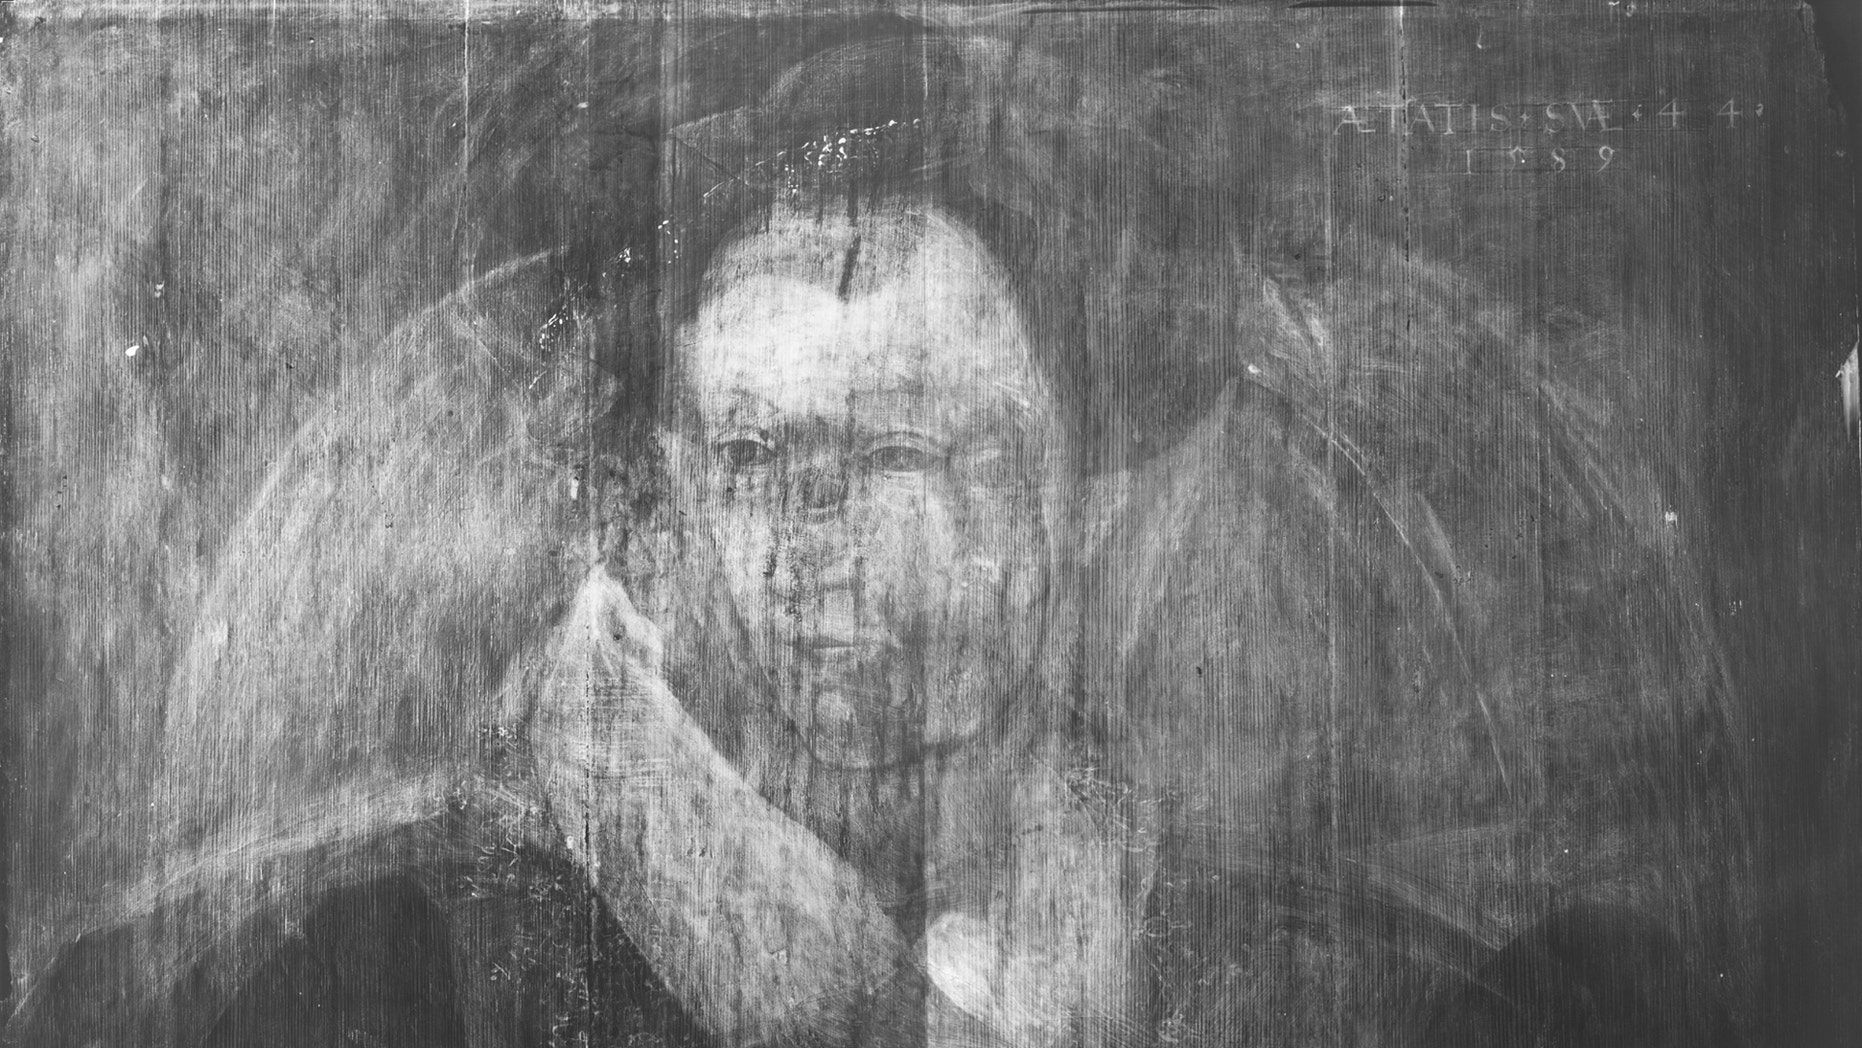 X-ray view of Adrian Vanson's portrait of Sir John Maitland that shows the ghostly outline of a hidden portrait of Mary, Queen of Scots (courtesy National Galleries of Scotland).